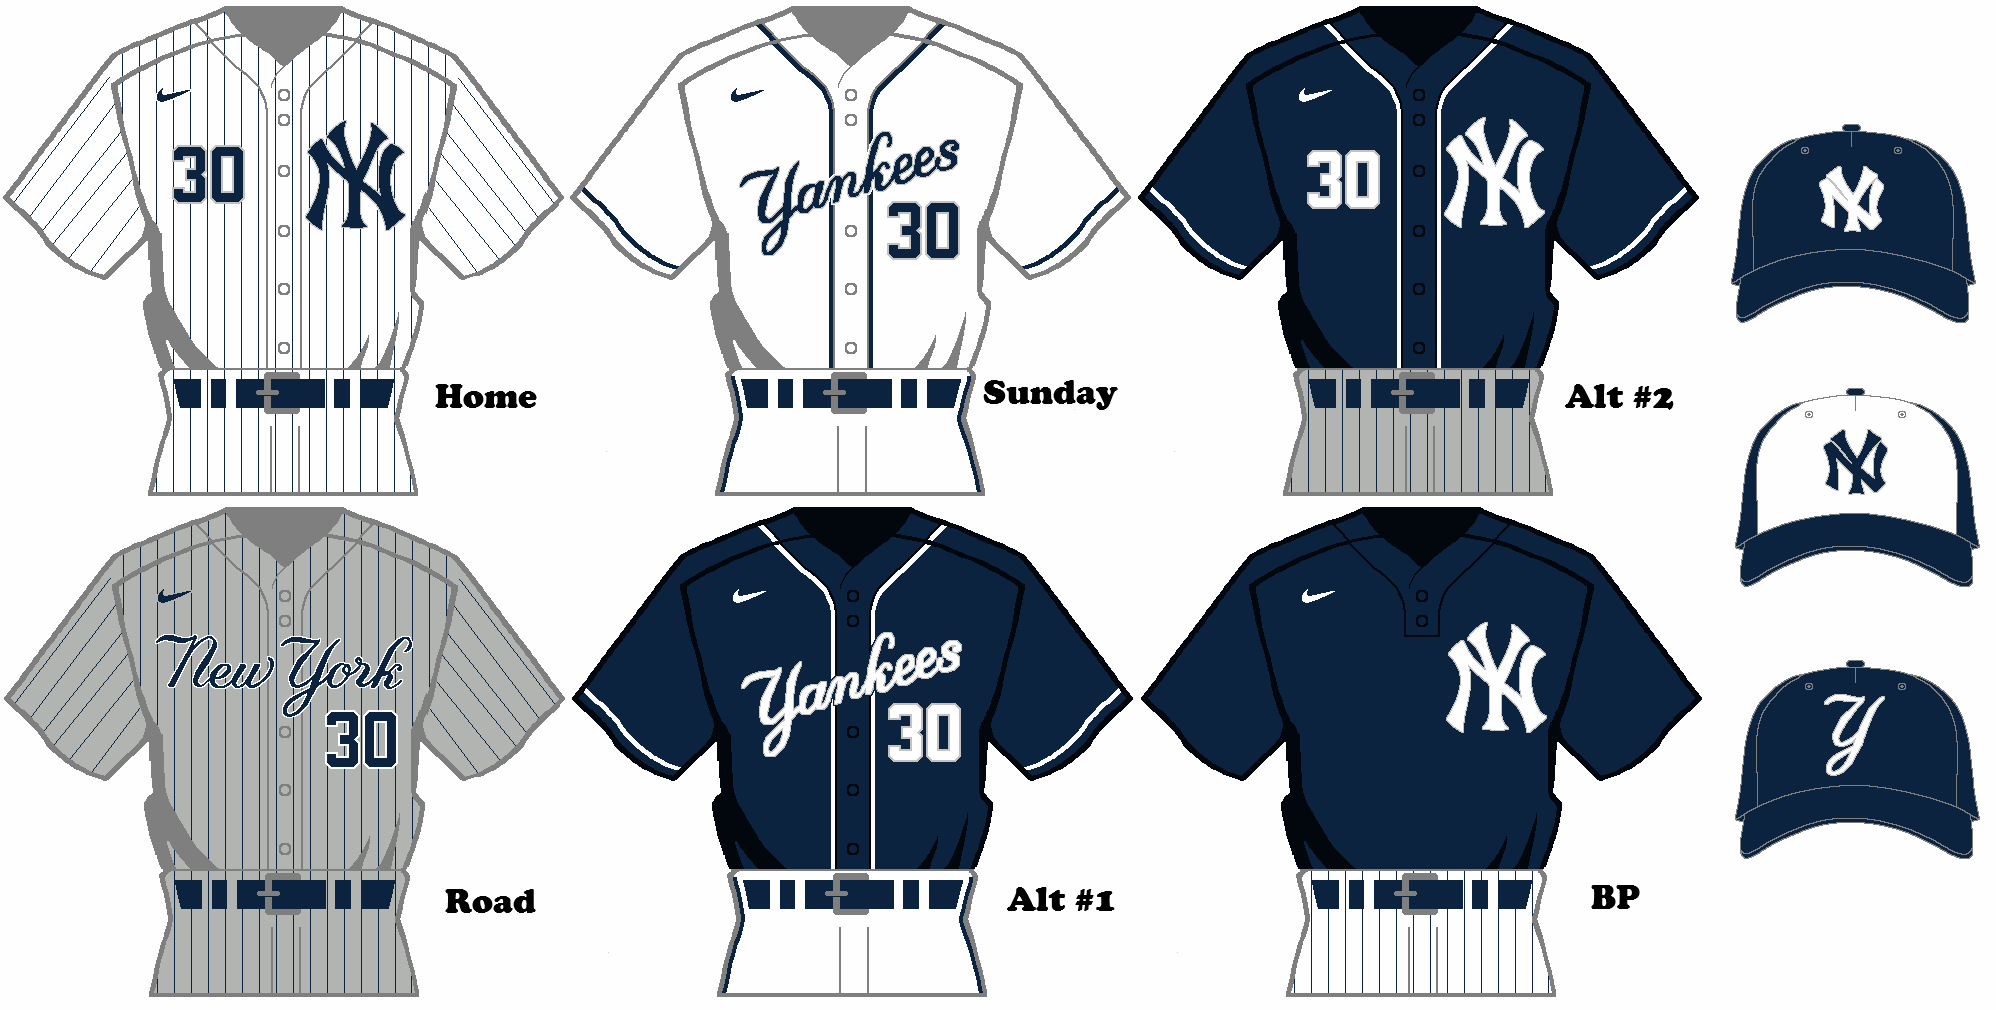 reputable site 6d819 6b69b Nike MLB Rebrand Concept - New York Yankees Uniform Set ...